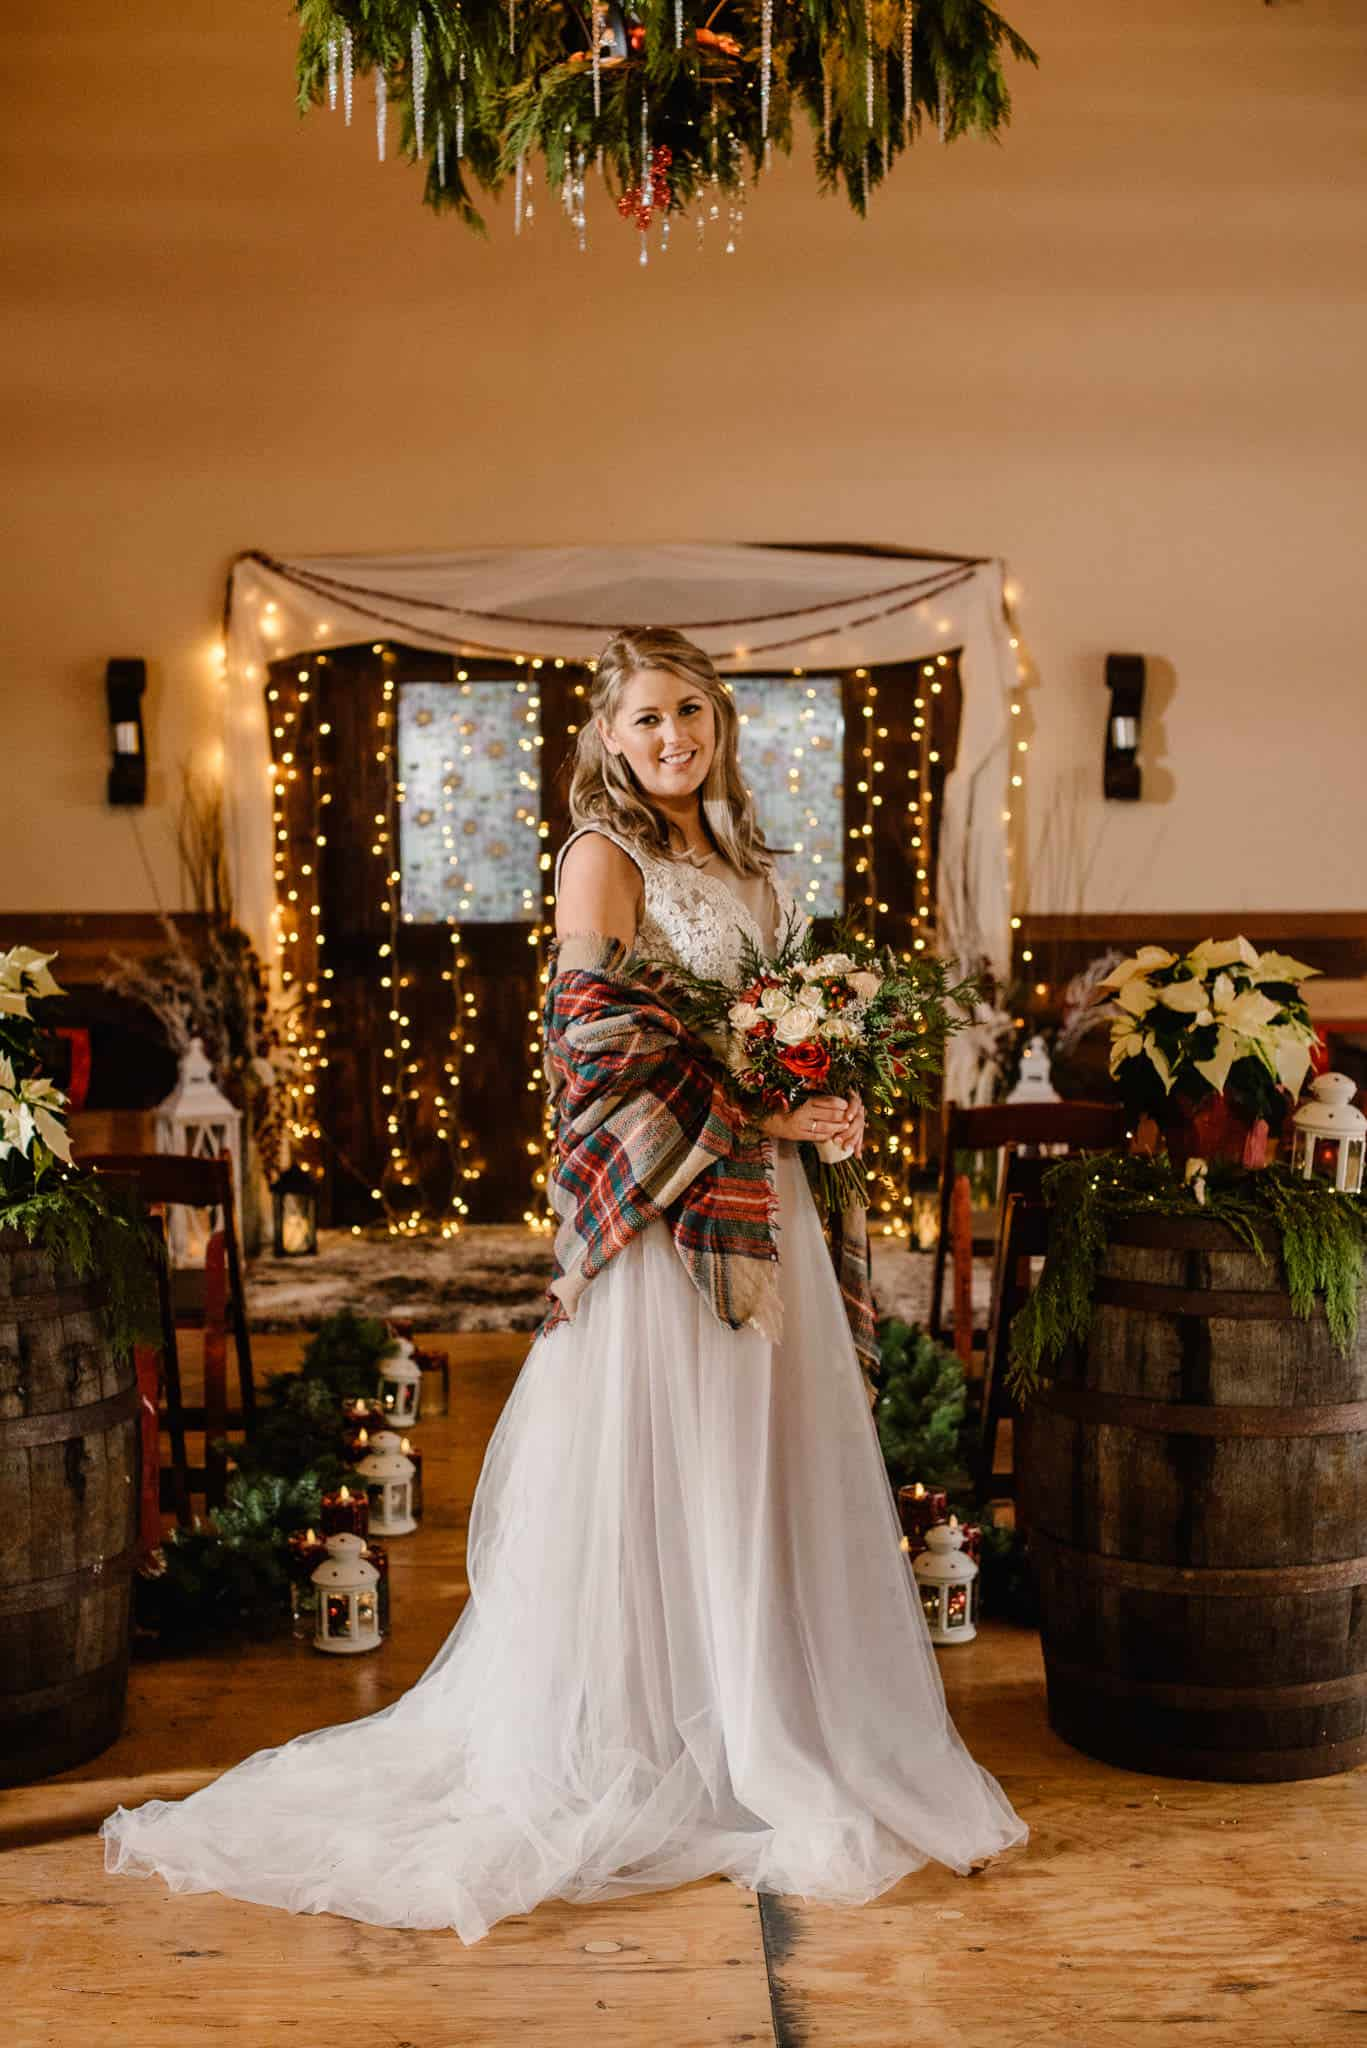 Heavenly bridal dress bride in dress in christmas decor holding flowers smiling at camera